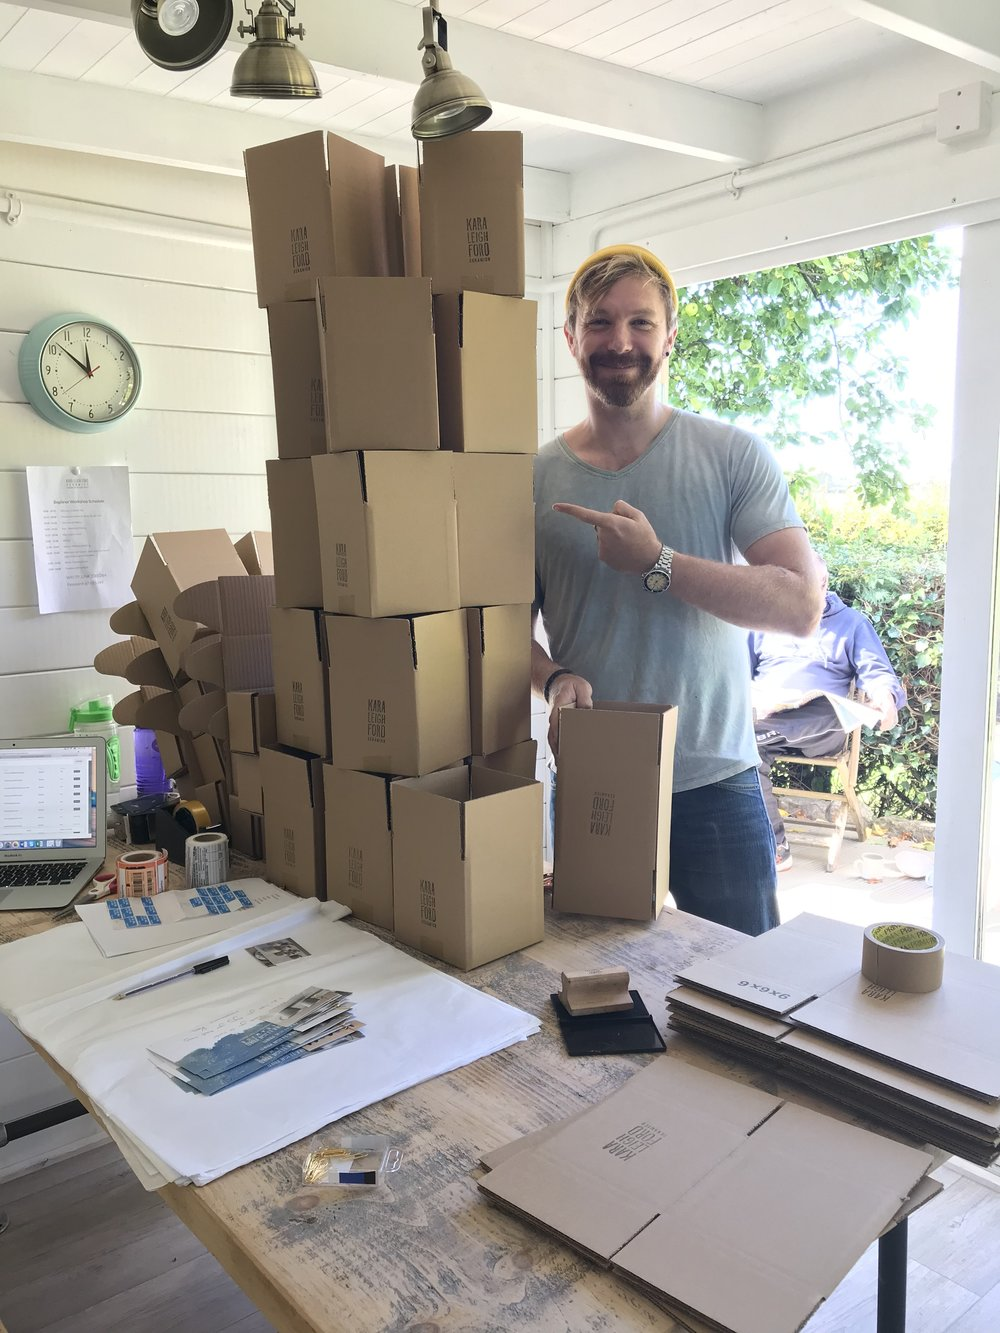 Thomas helping pack orders. Isn't he adorable?;-)